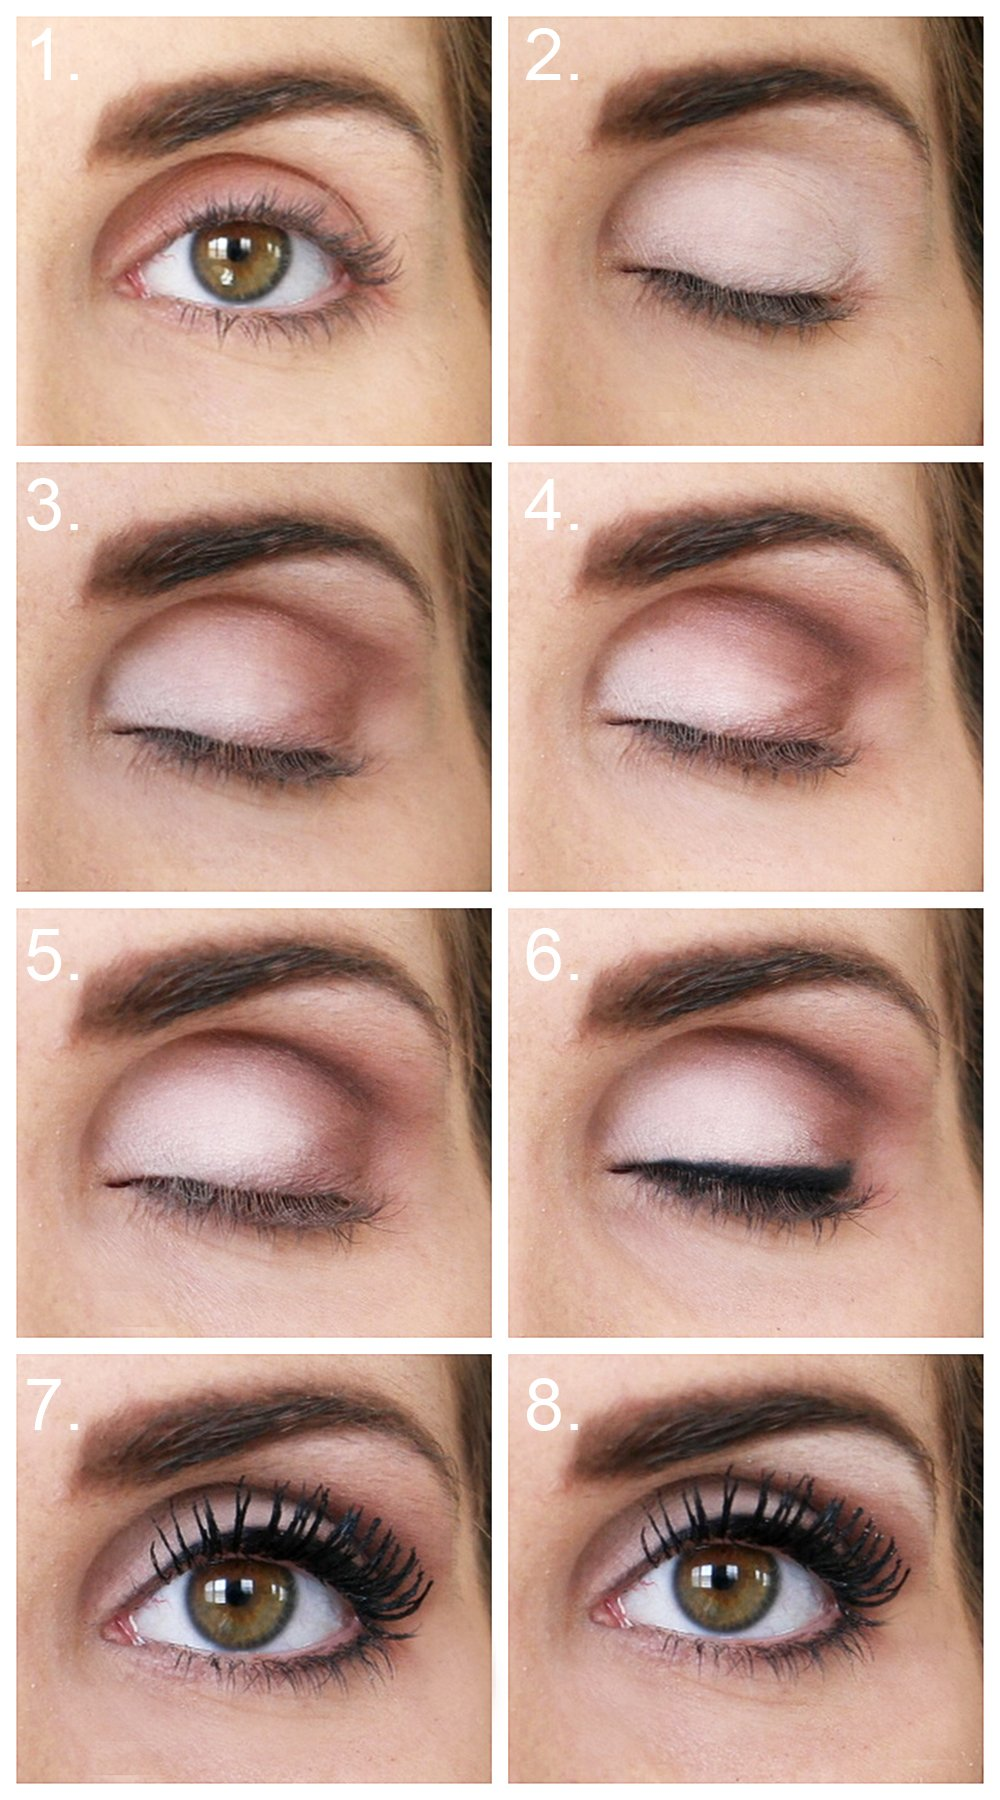 Smokey Eyeshadow Tutorial: Merrick's Art // Style + Sewing For The Everyday GirlWarm